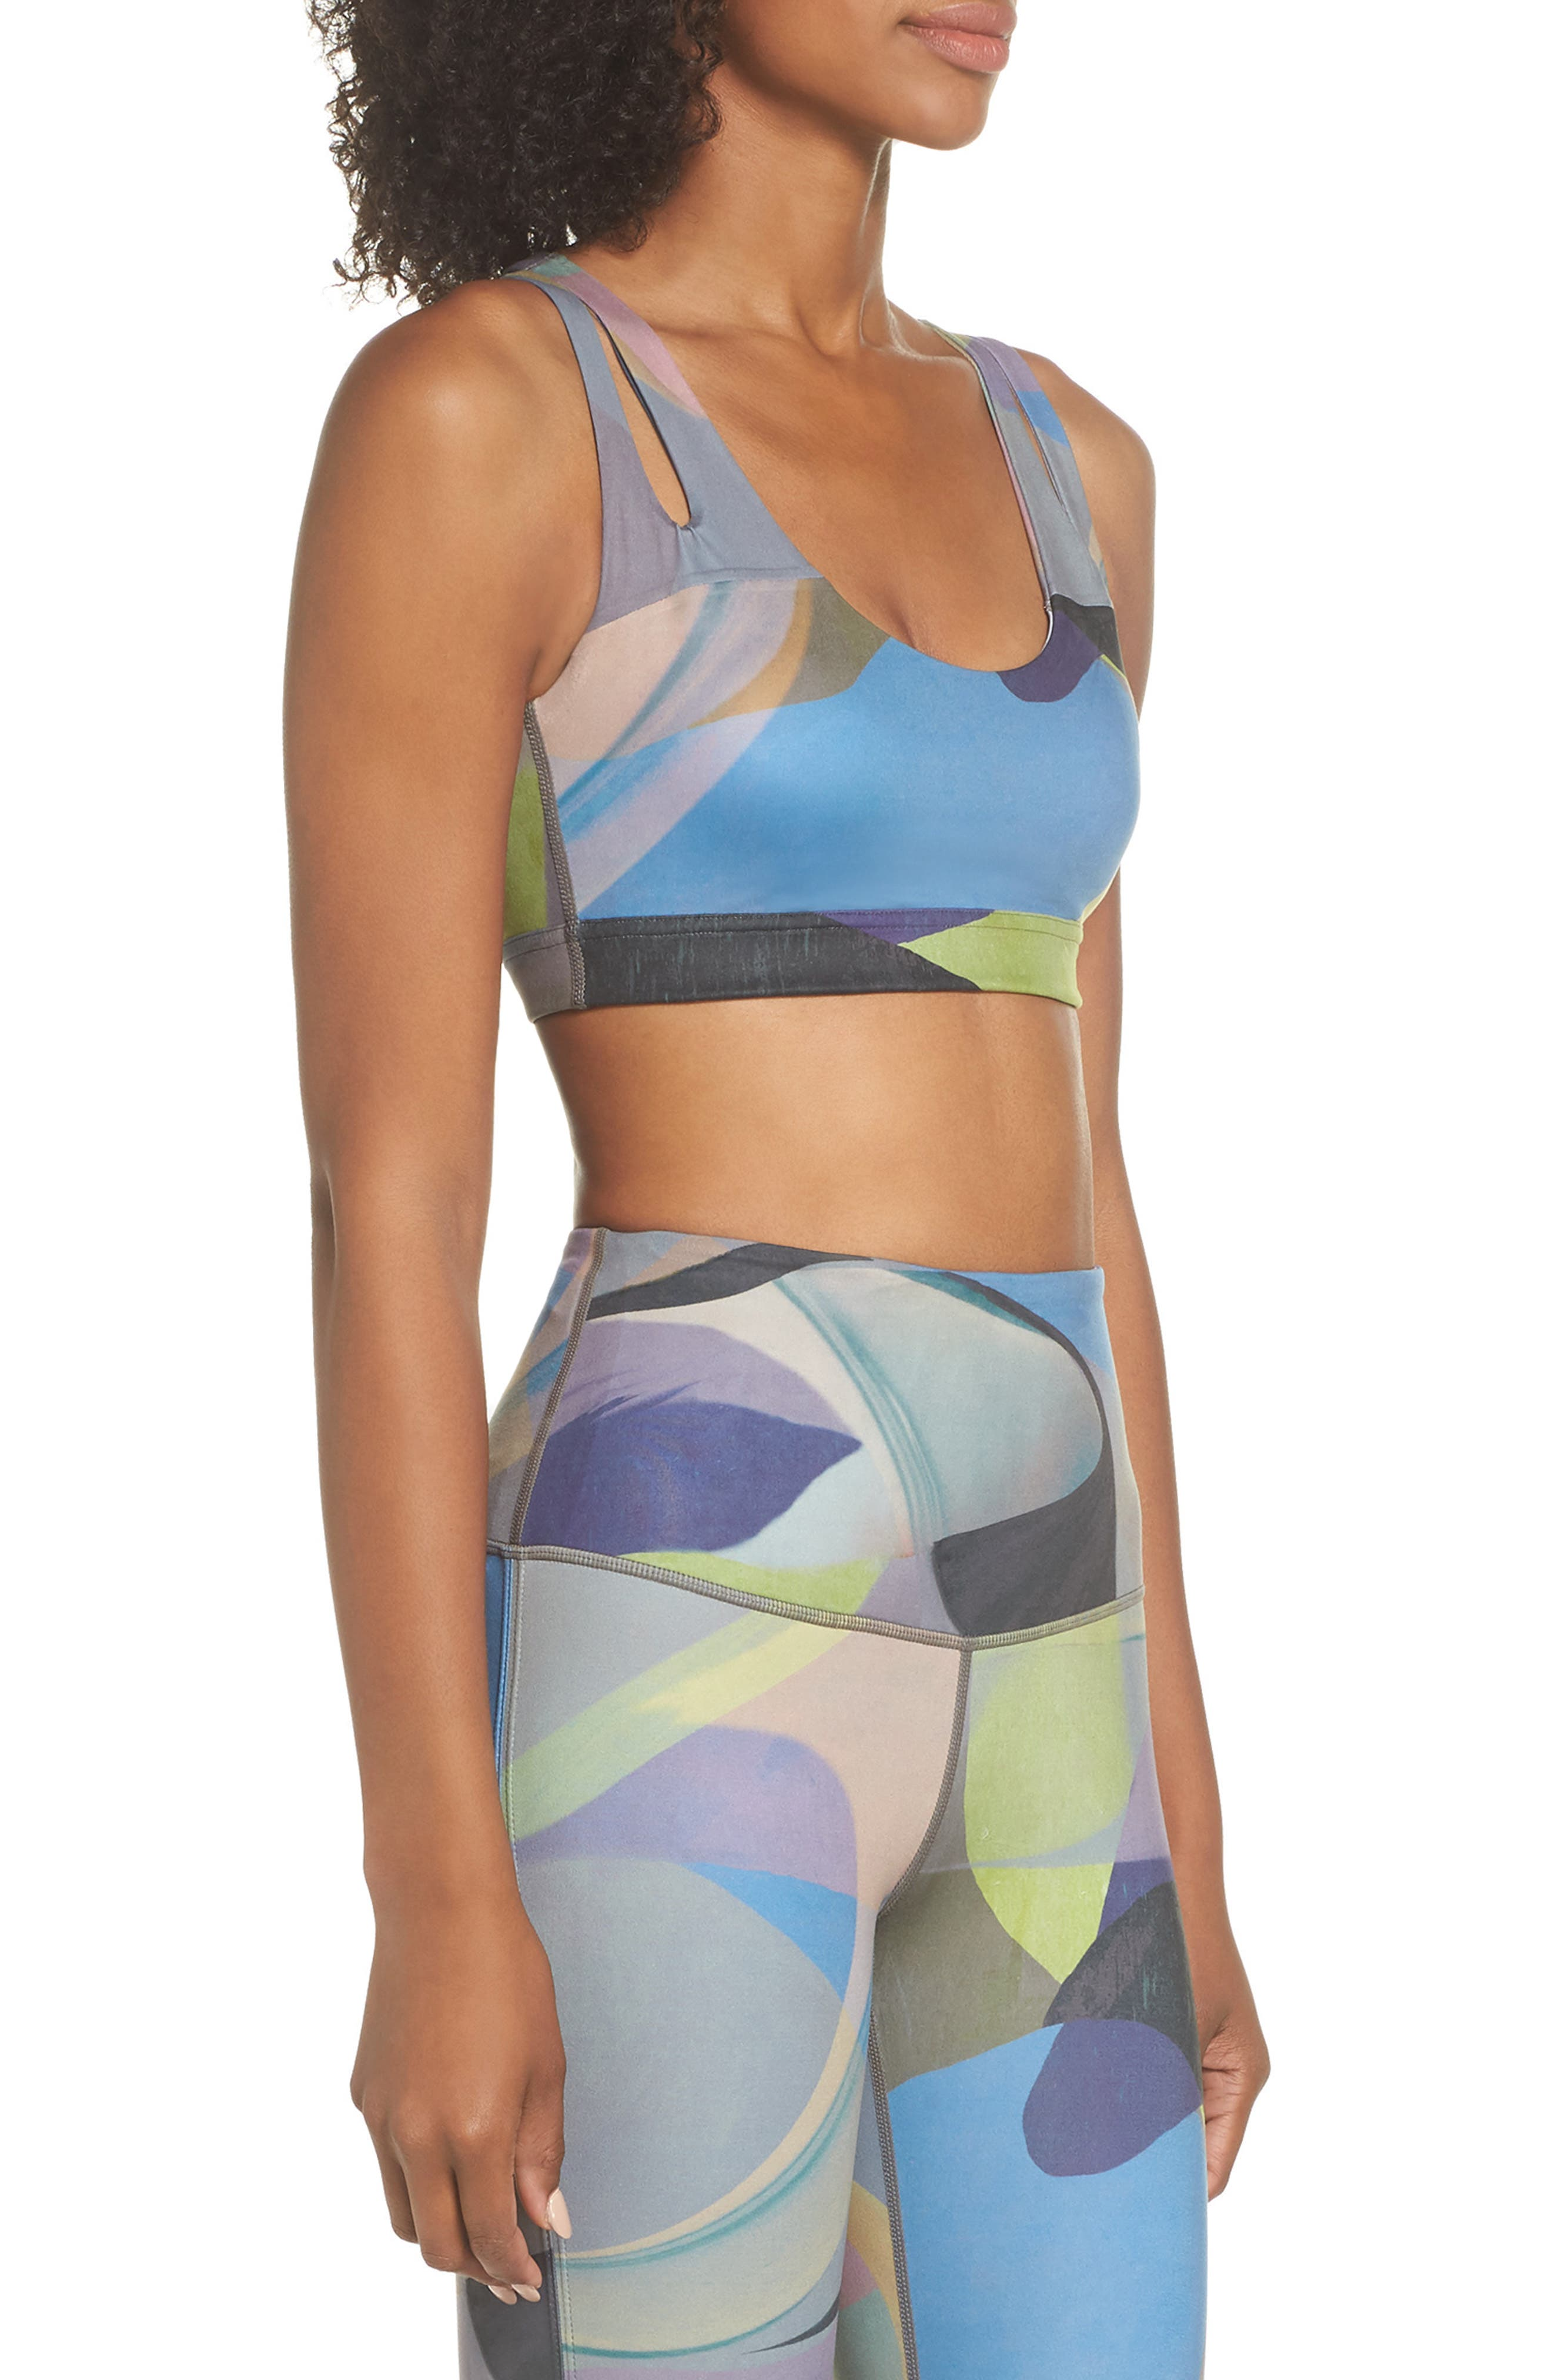 Lita Recycled Dual Strap Sports Bralette,                             Alternate thumbnail 3, color,                             GREY URBAN ABSTRACT BOTANICAL